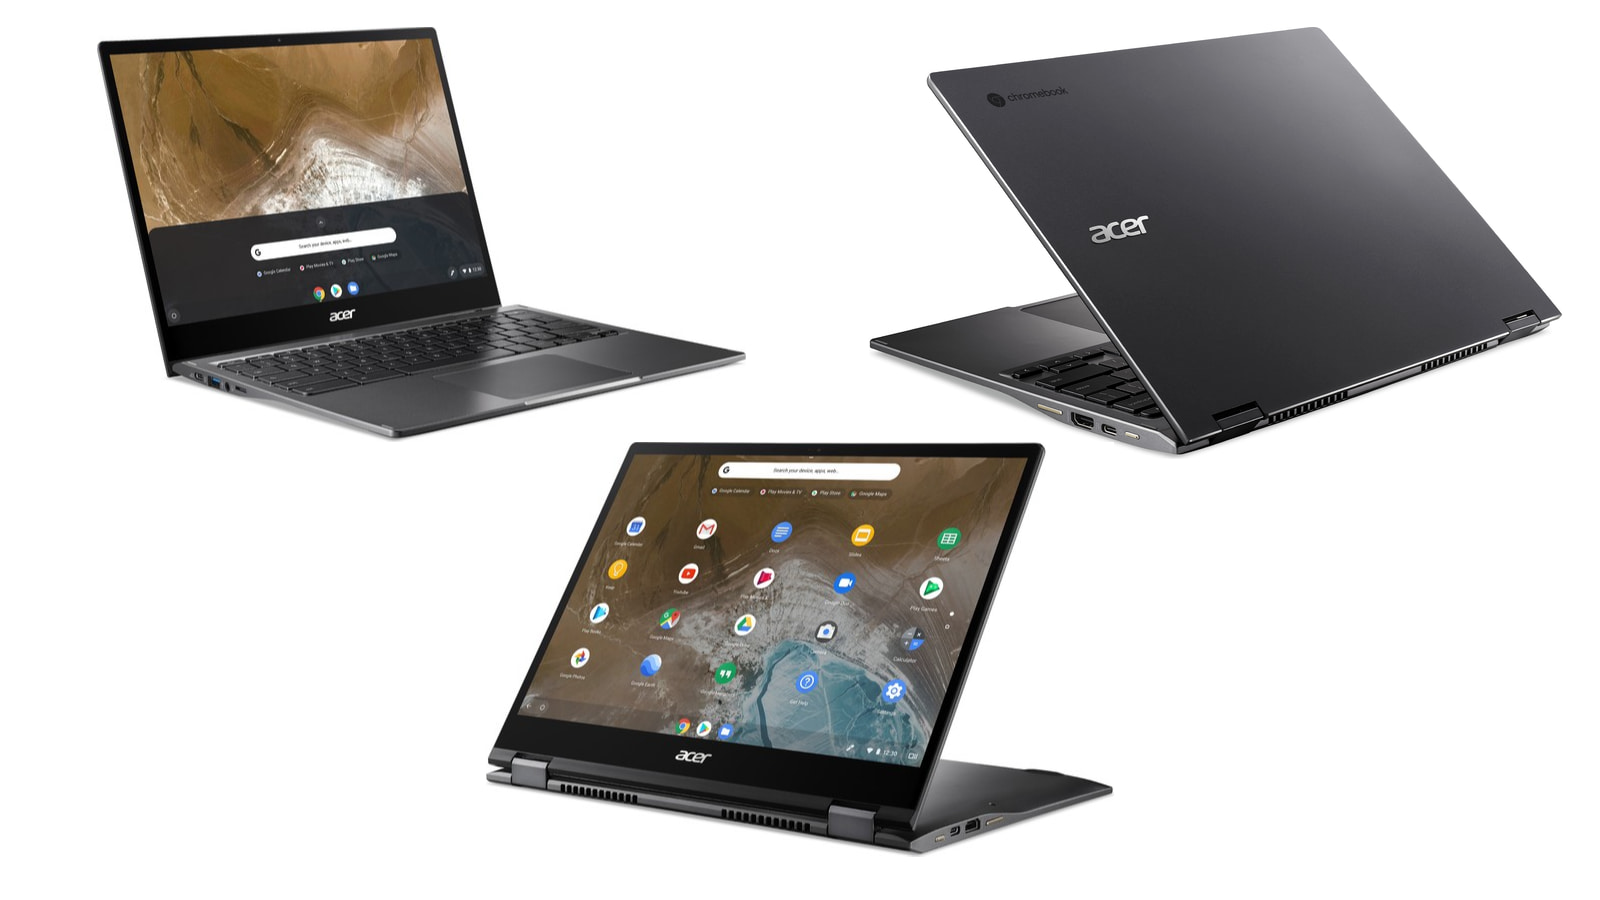 Acer has quietly launched a 10th Gen Comet Lake Chromebook Spin 13